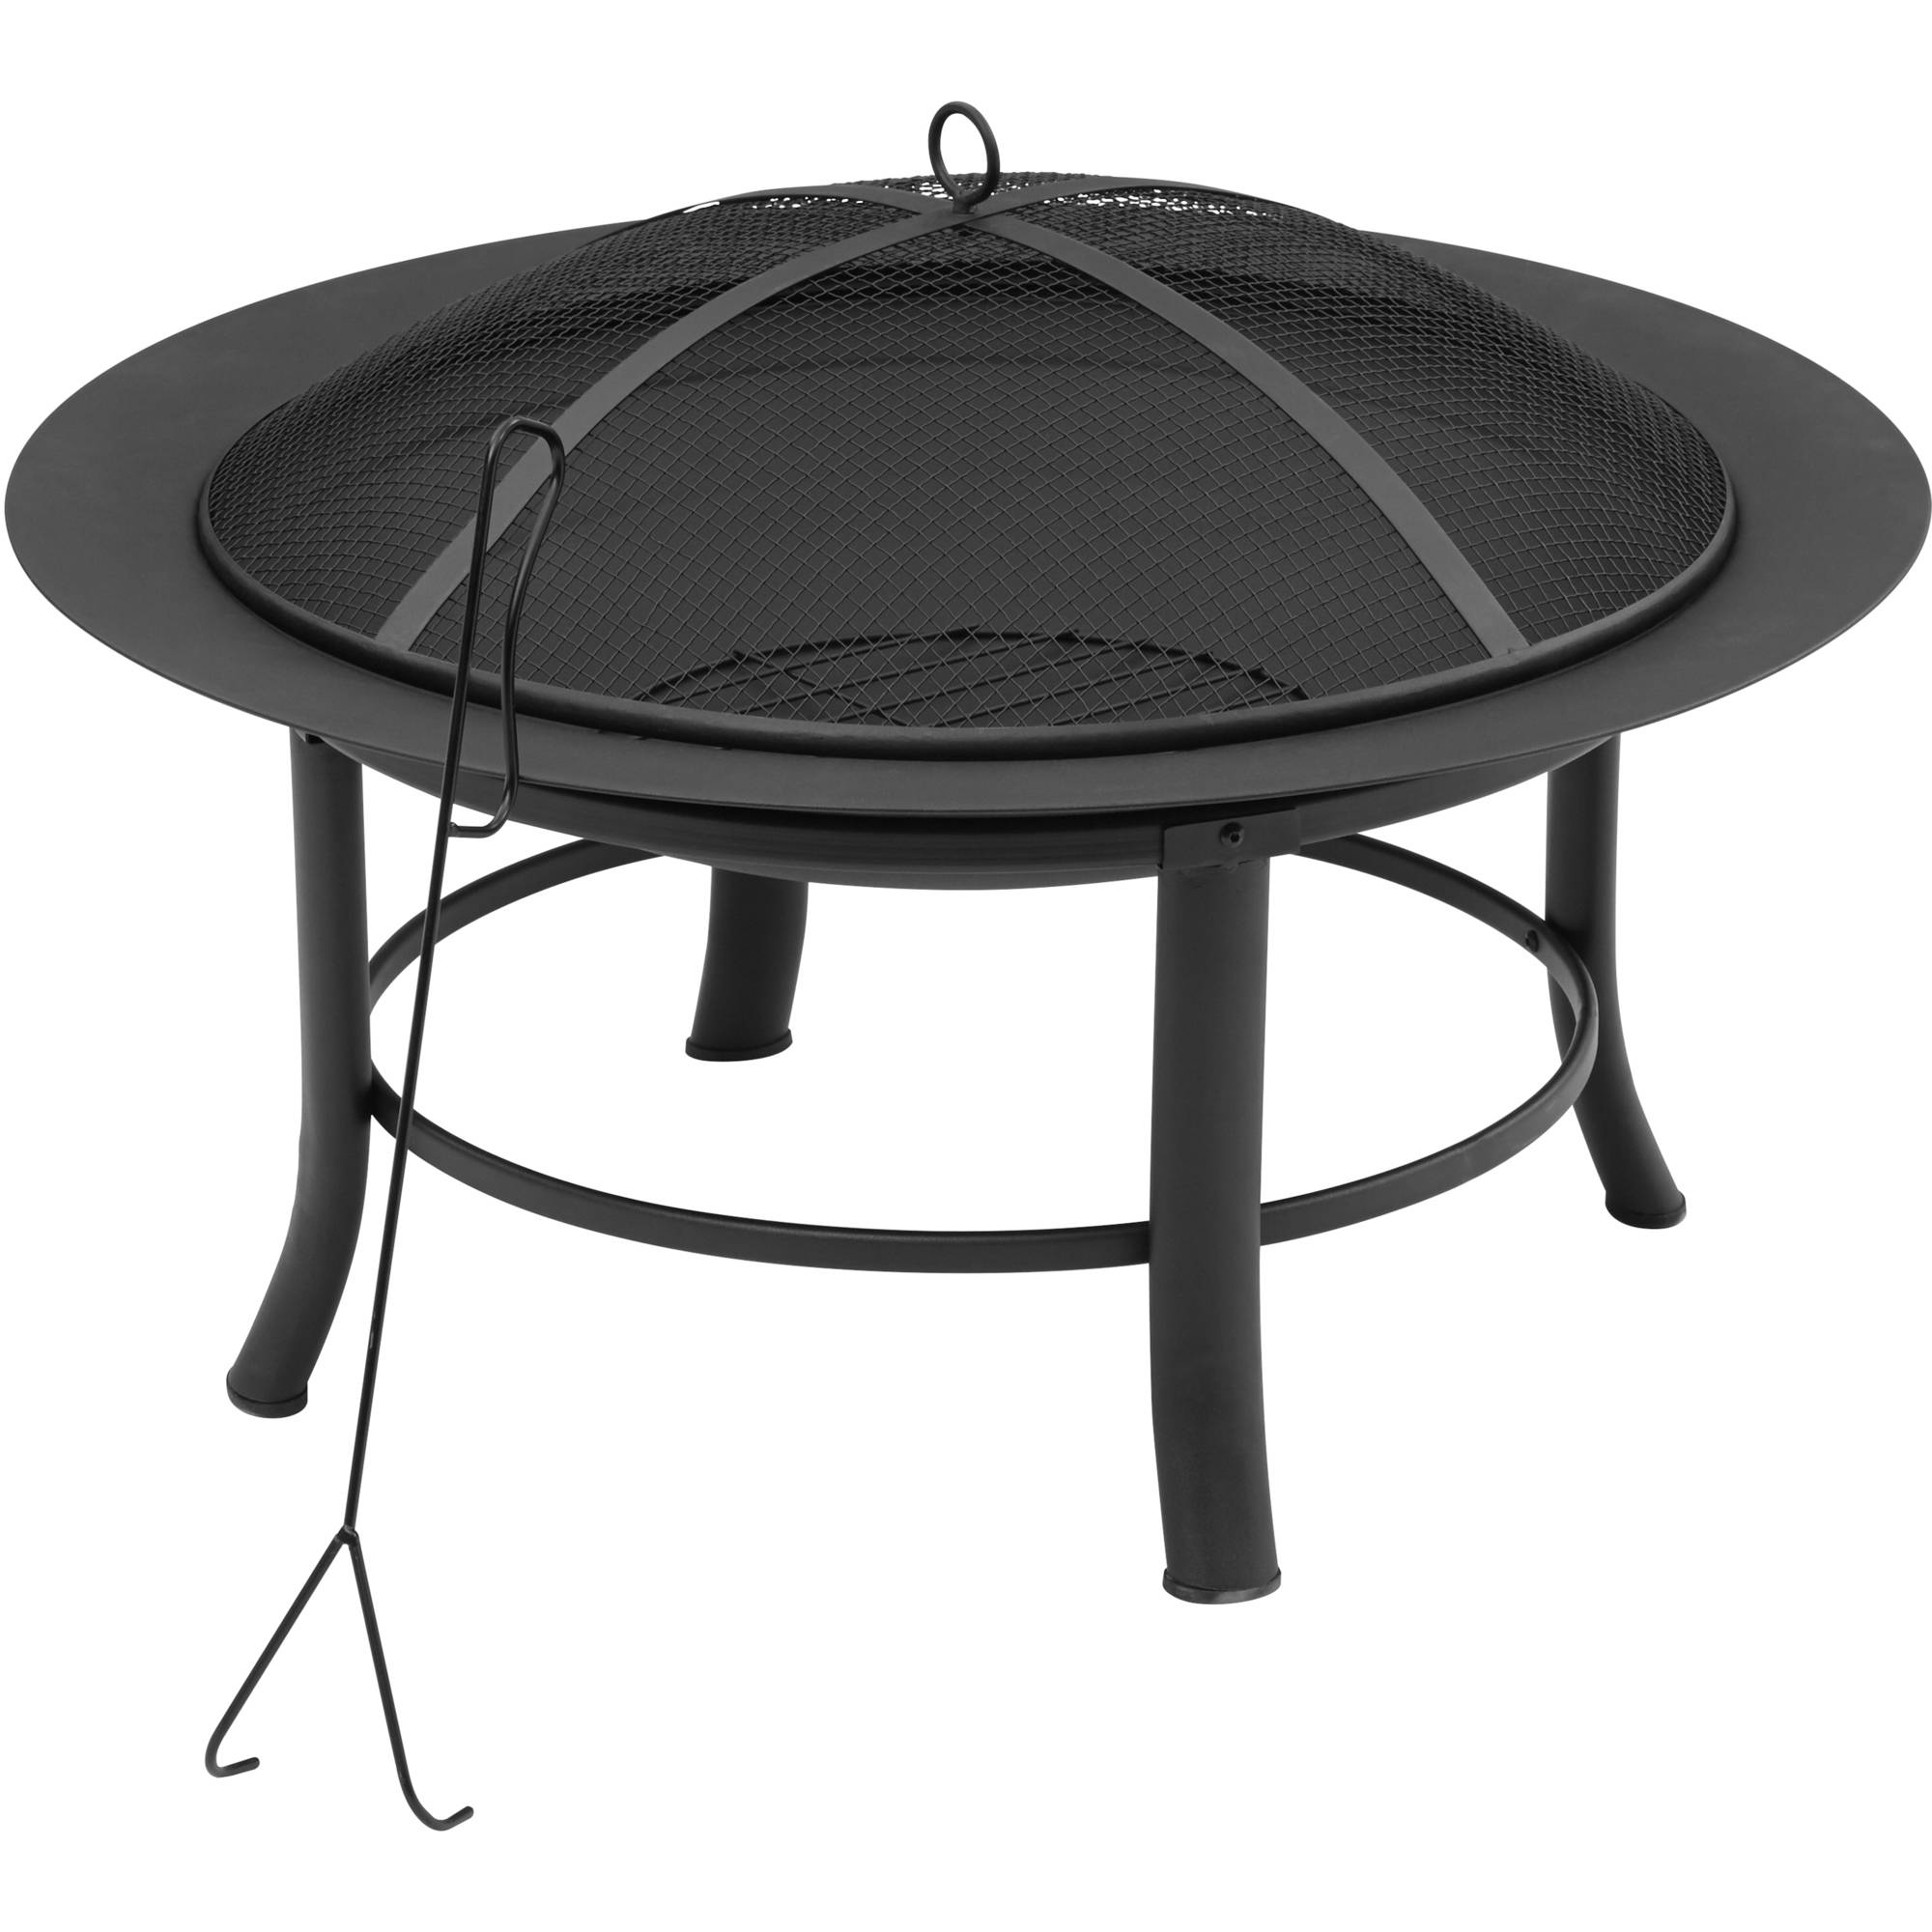 "Mainstays Fire Pit, 28"" Image 1 of 7"